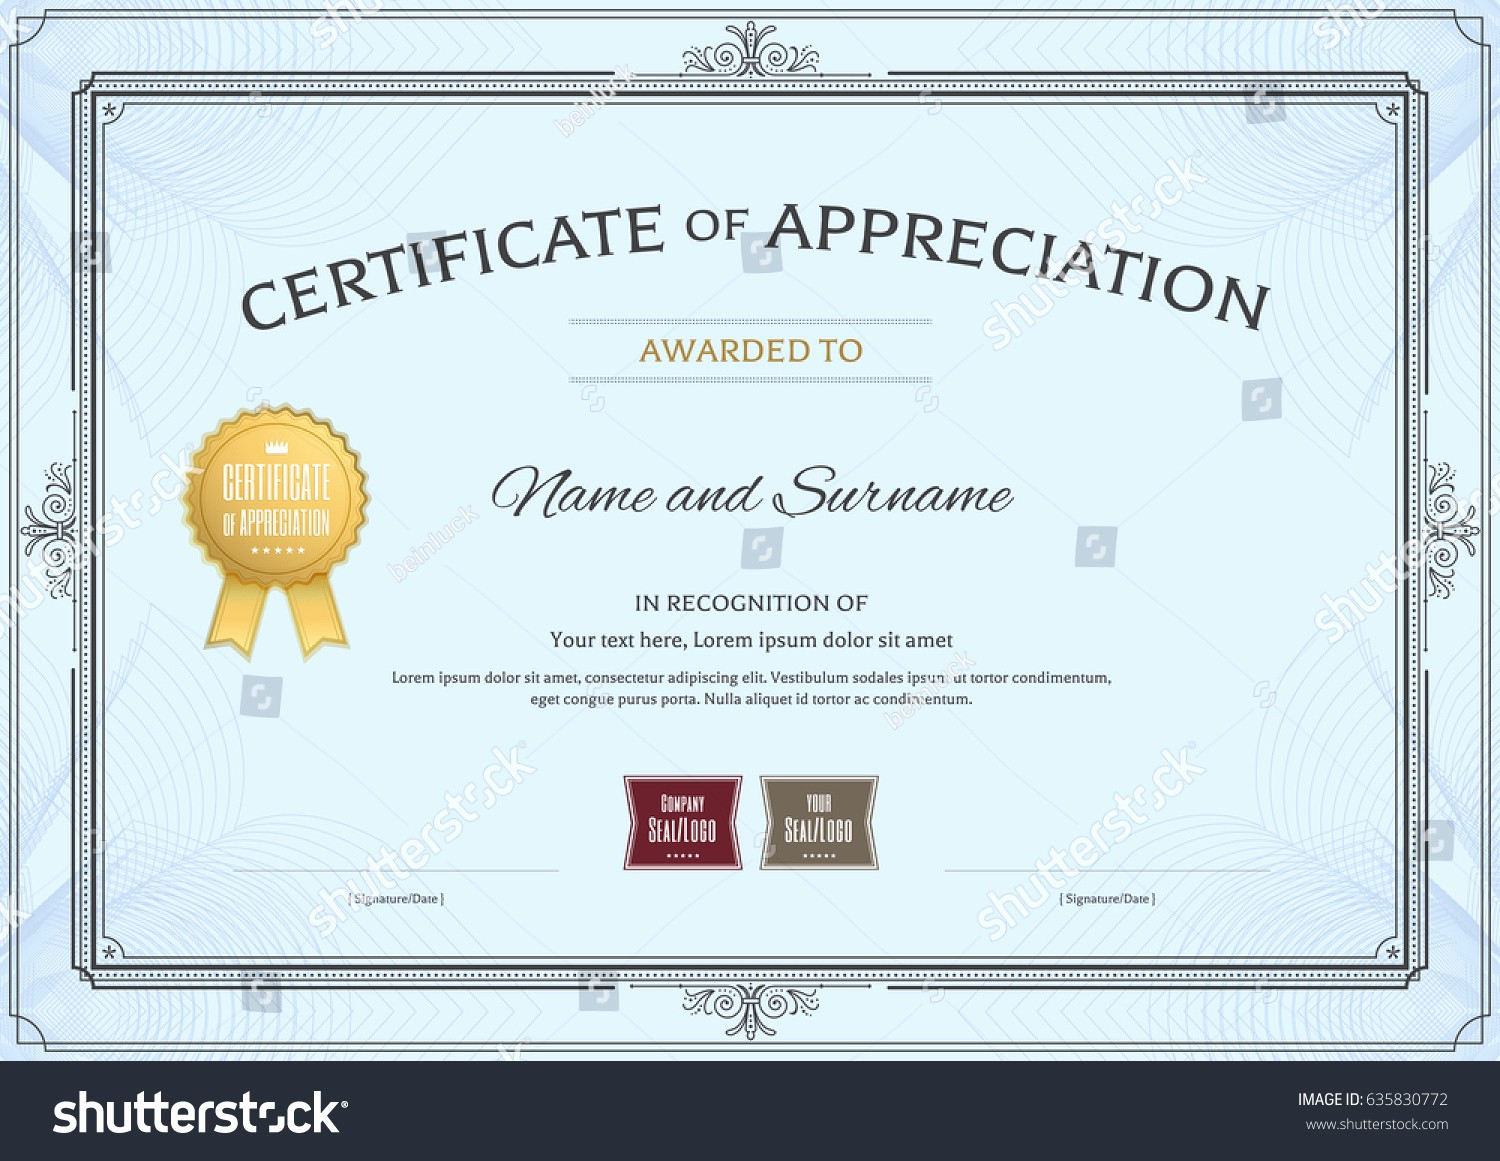 Border for Certificate Of Appreciation Best Of Certificate Appreciation Template Award Ribbon Vintage